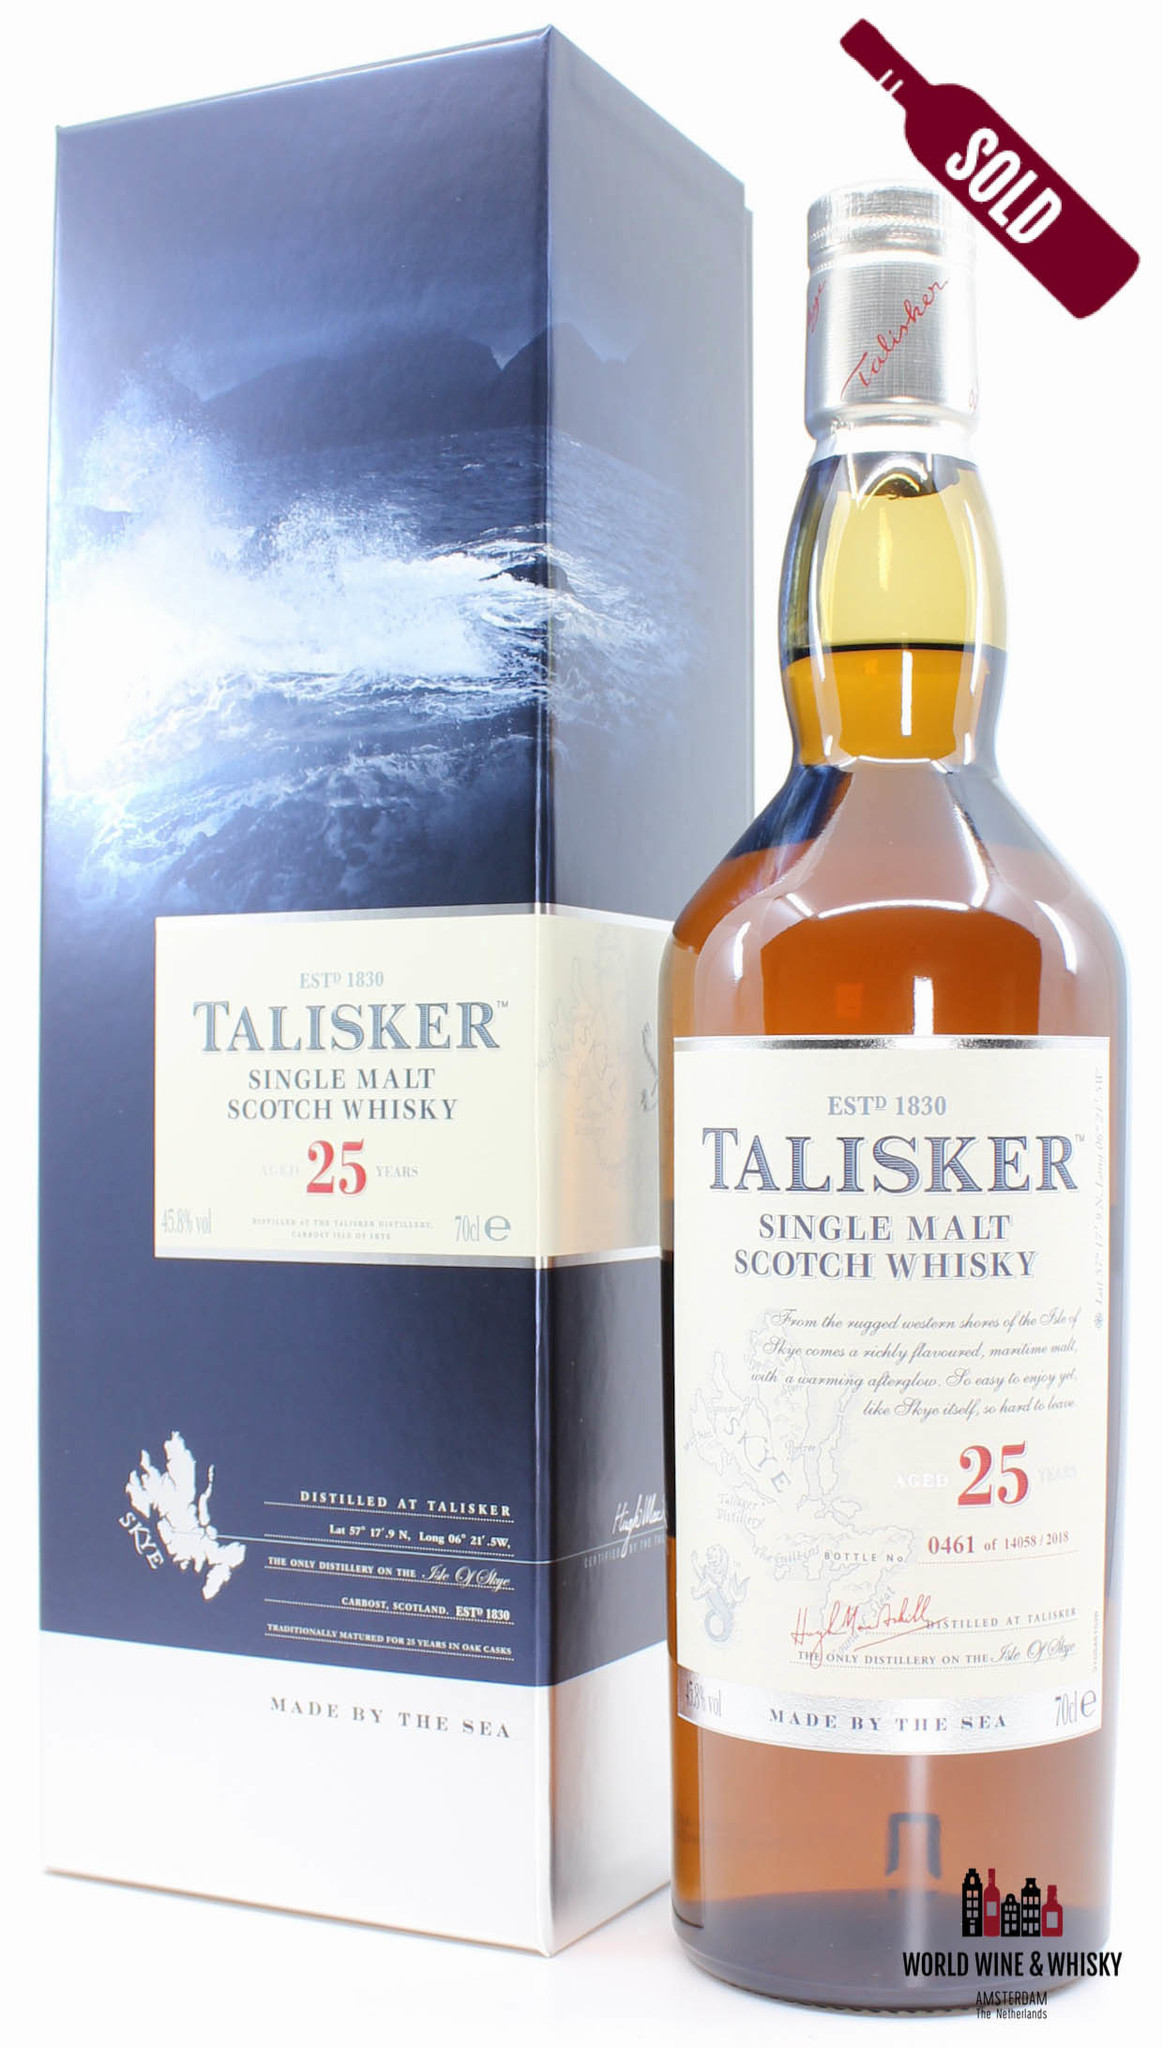 Talisker Talisker 25 Years Old 2018 Made by the Sea 45.8% (one of 14058 bottles)